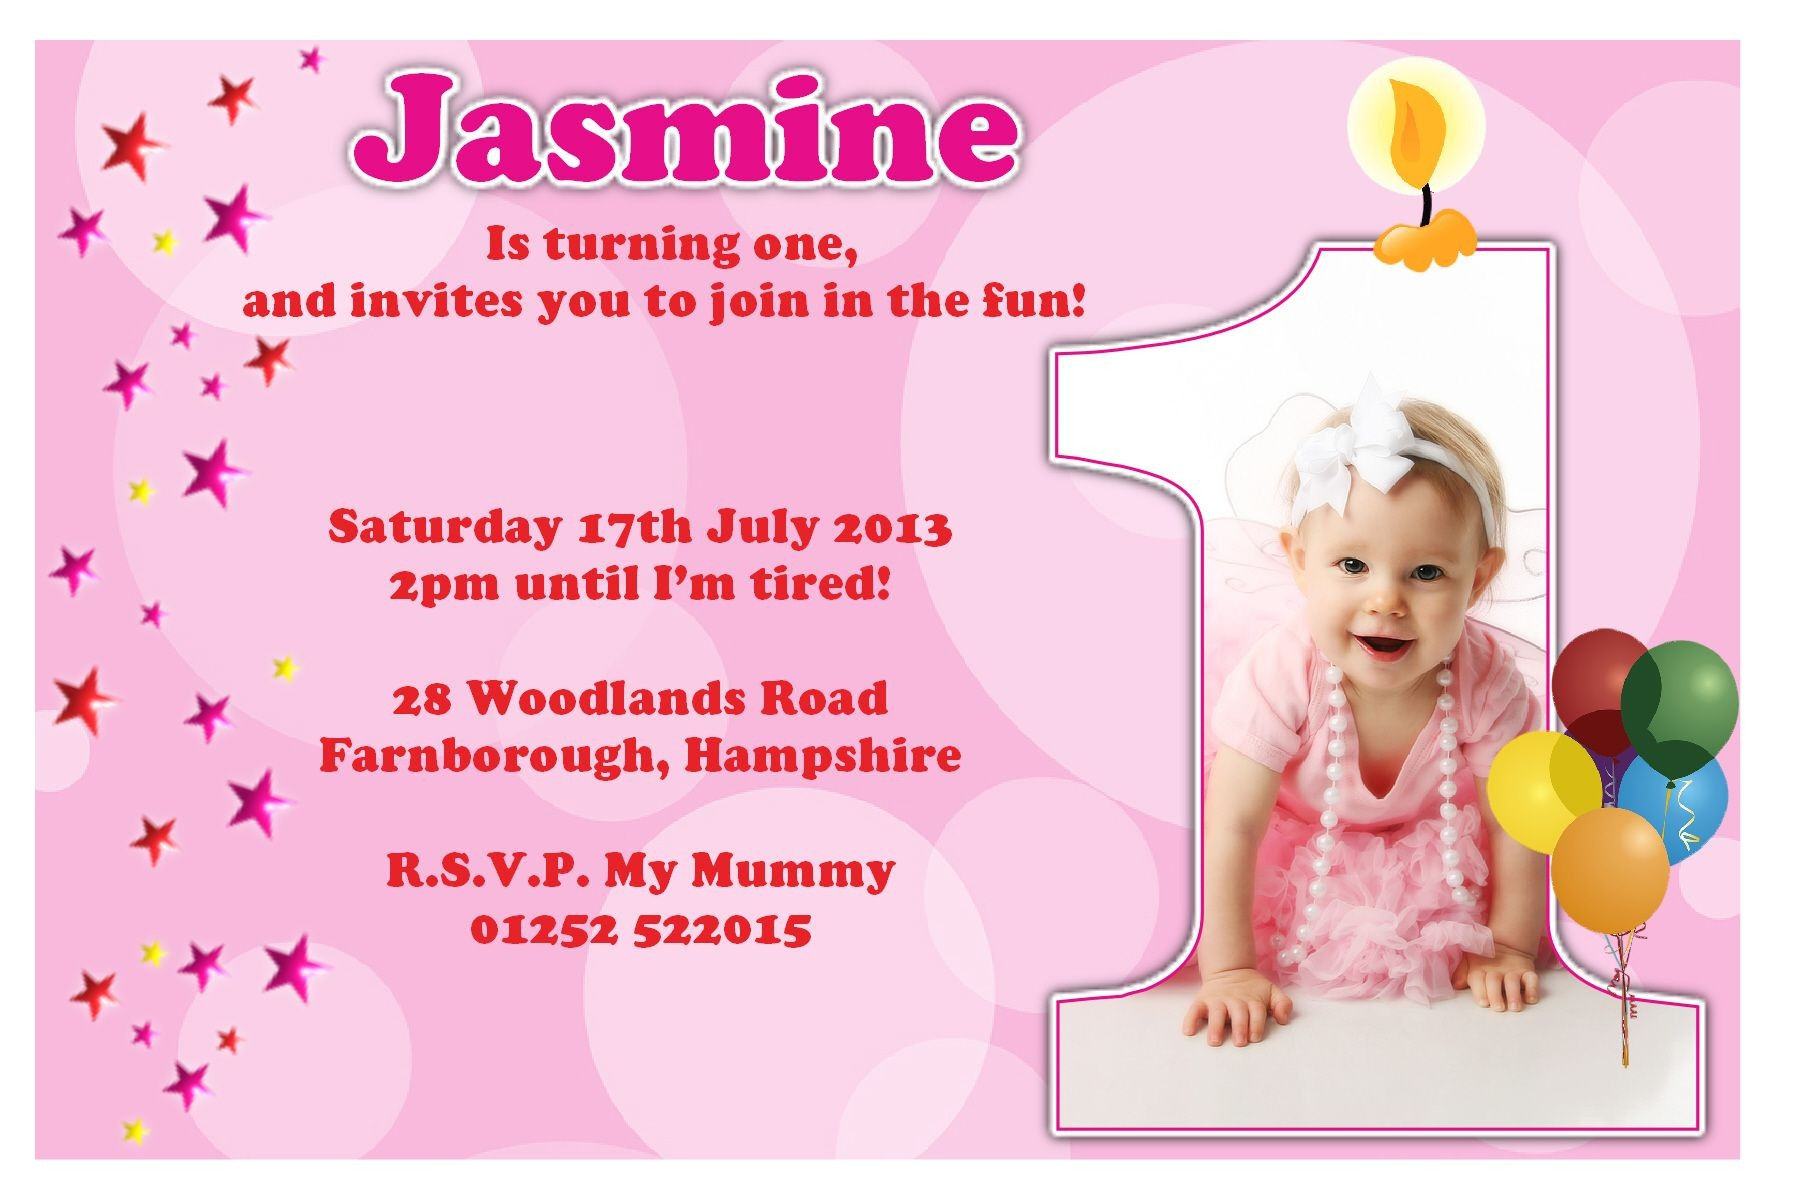 first birthday invitation letter ; sample-invitation-letter-for-first-birthday-party-new-16th-birthday-invitations-templates-ideas-1st-birthday-of-sample-invitation-letter-for-first-birthday-party